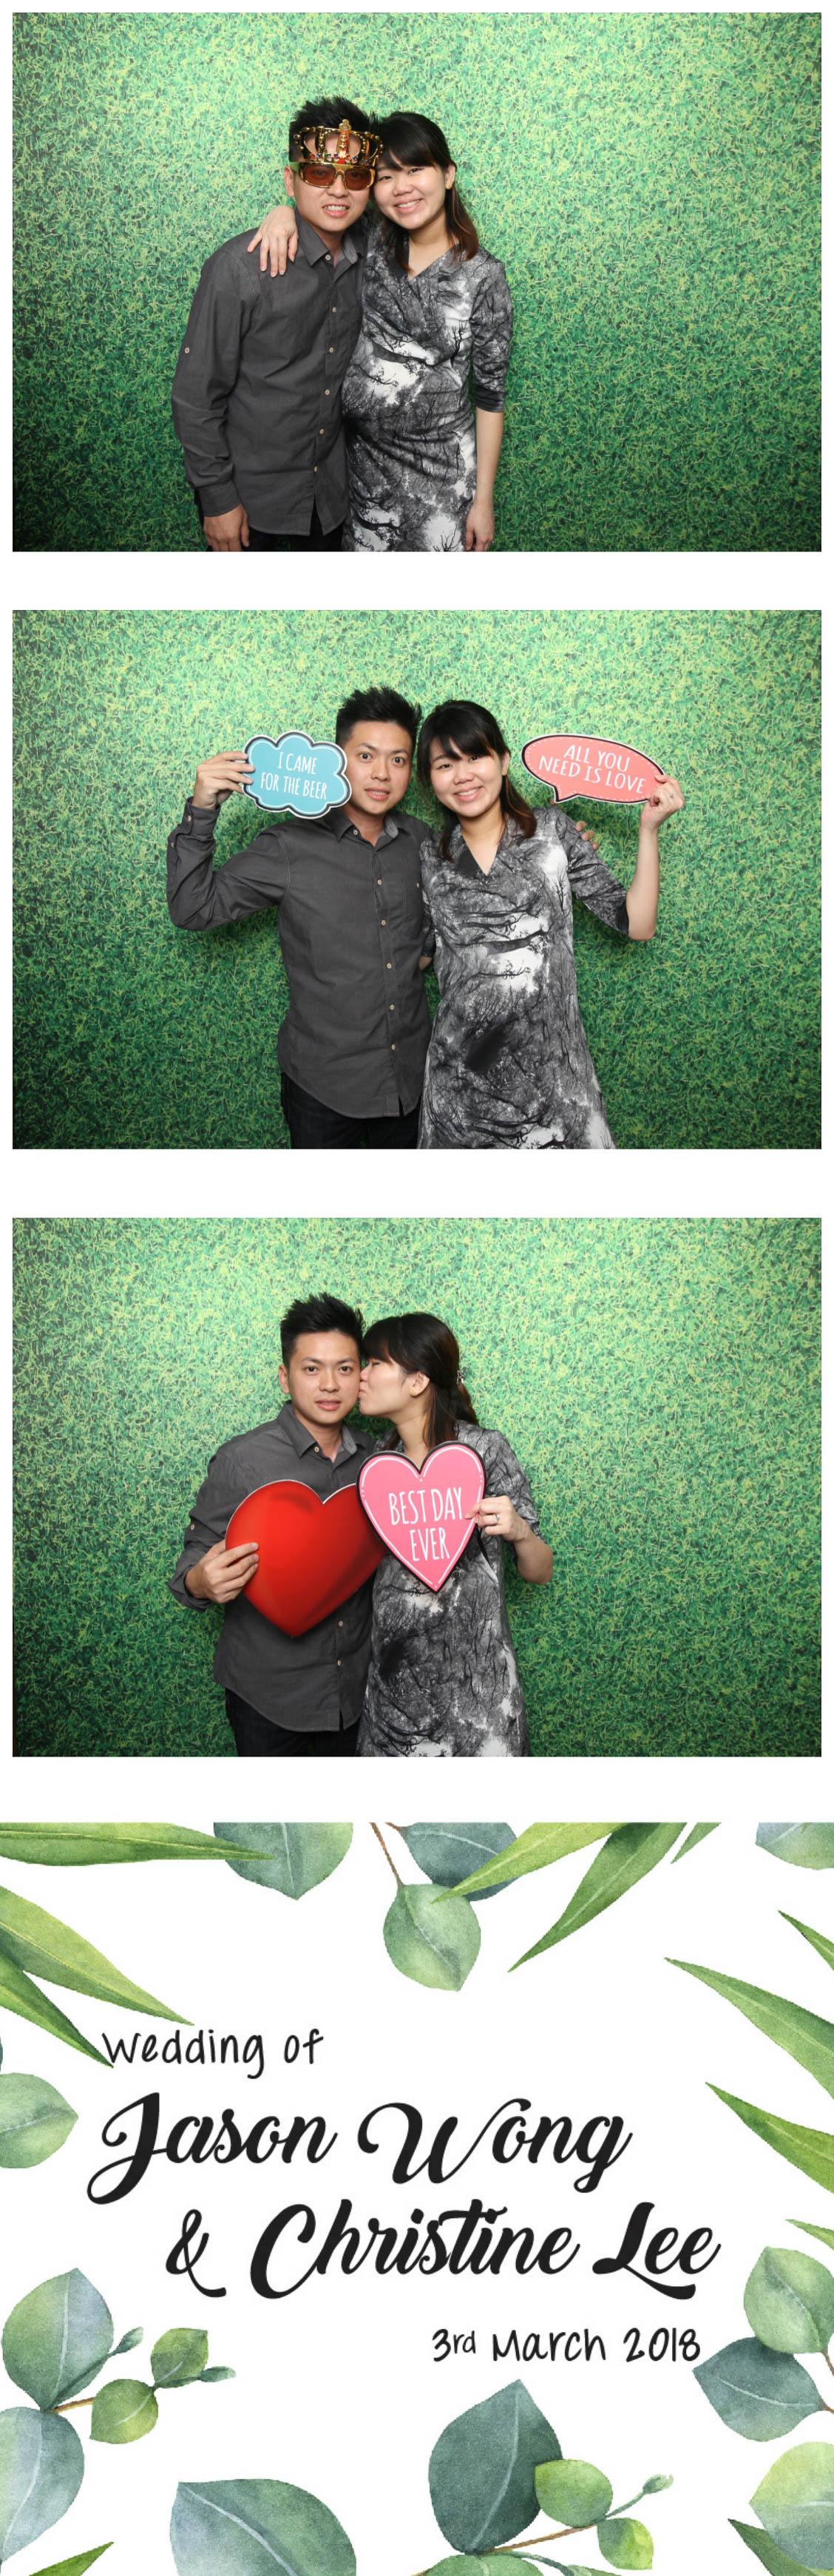 Photobooth 0302-46